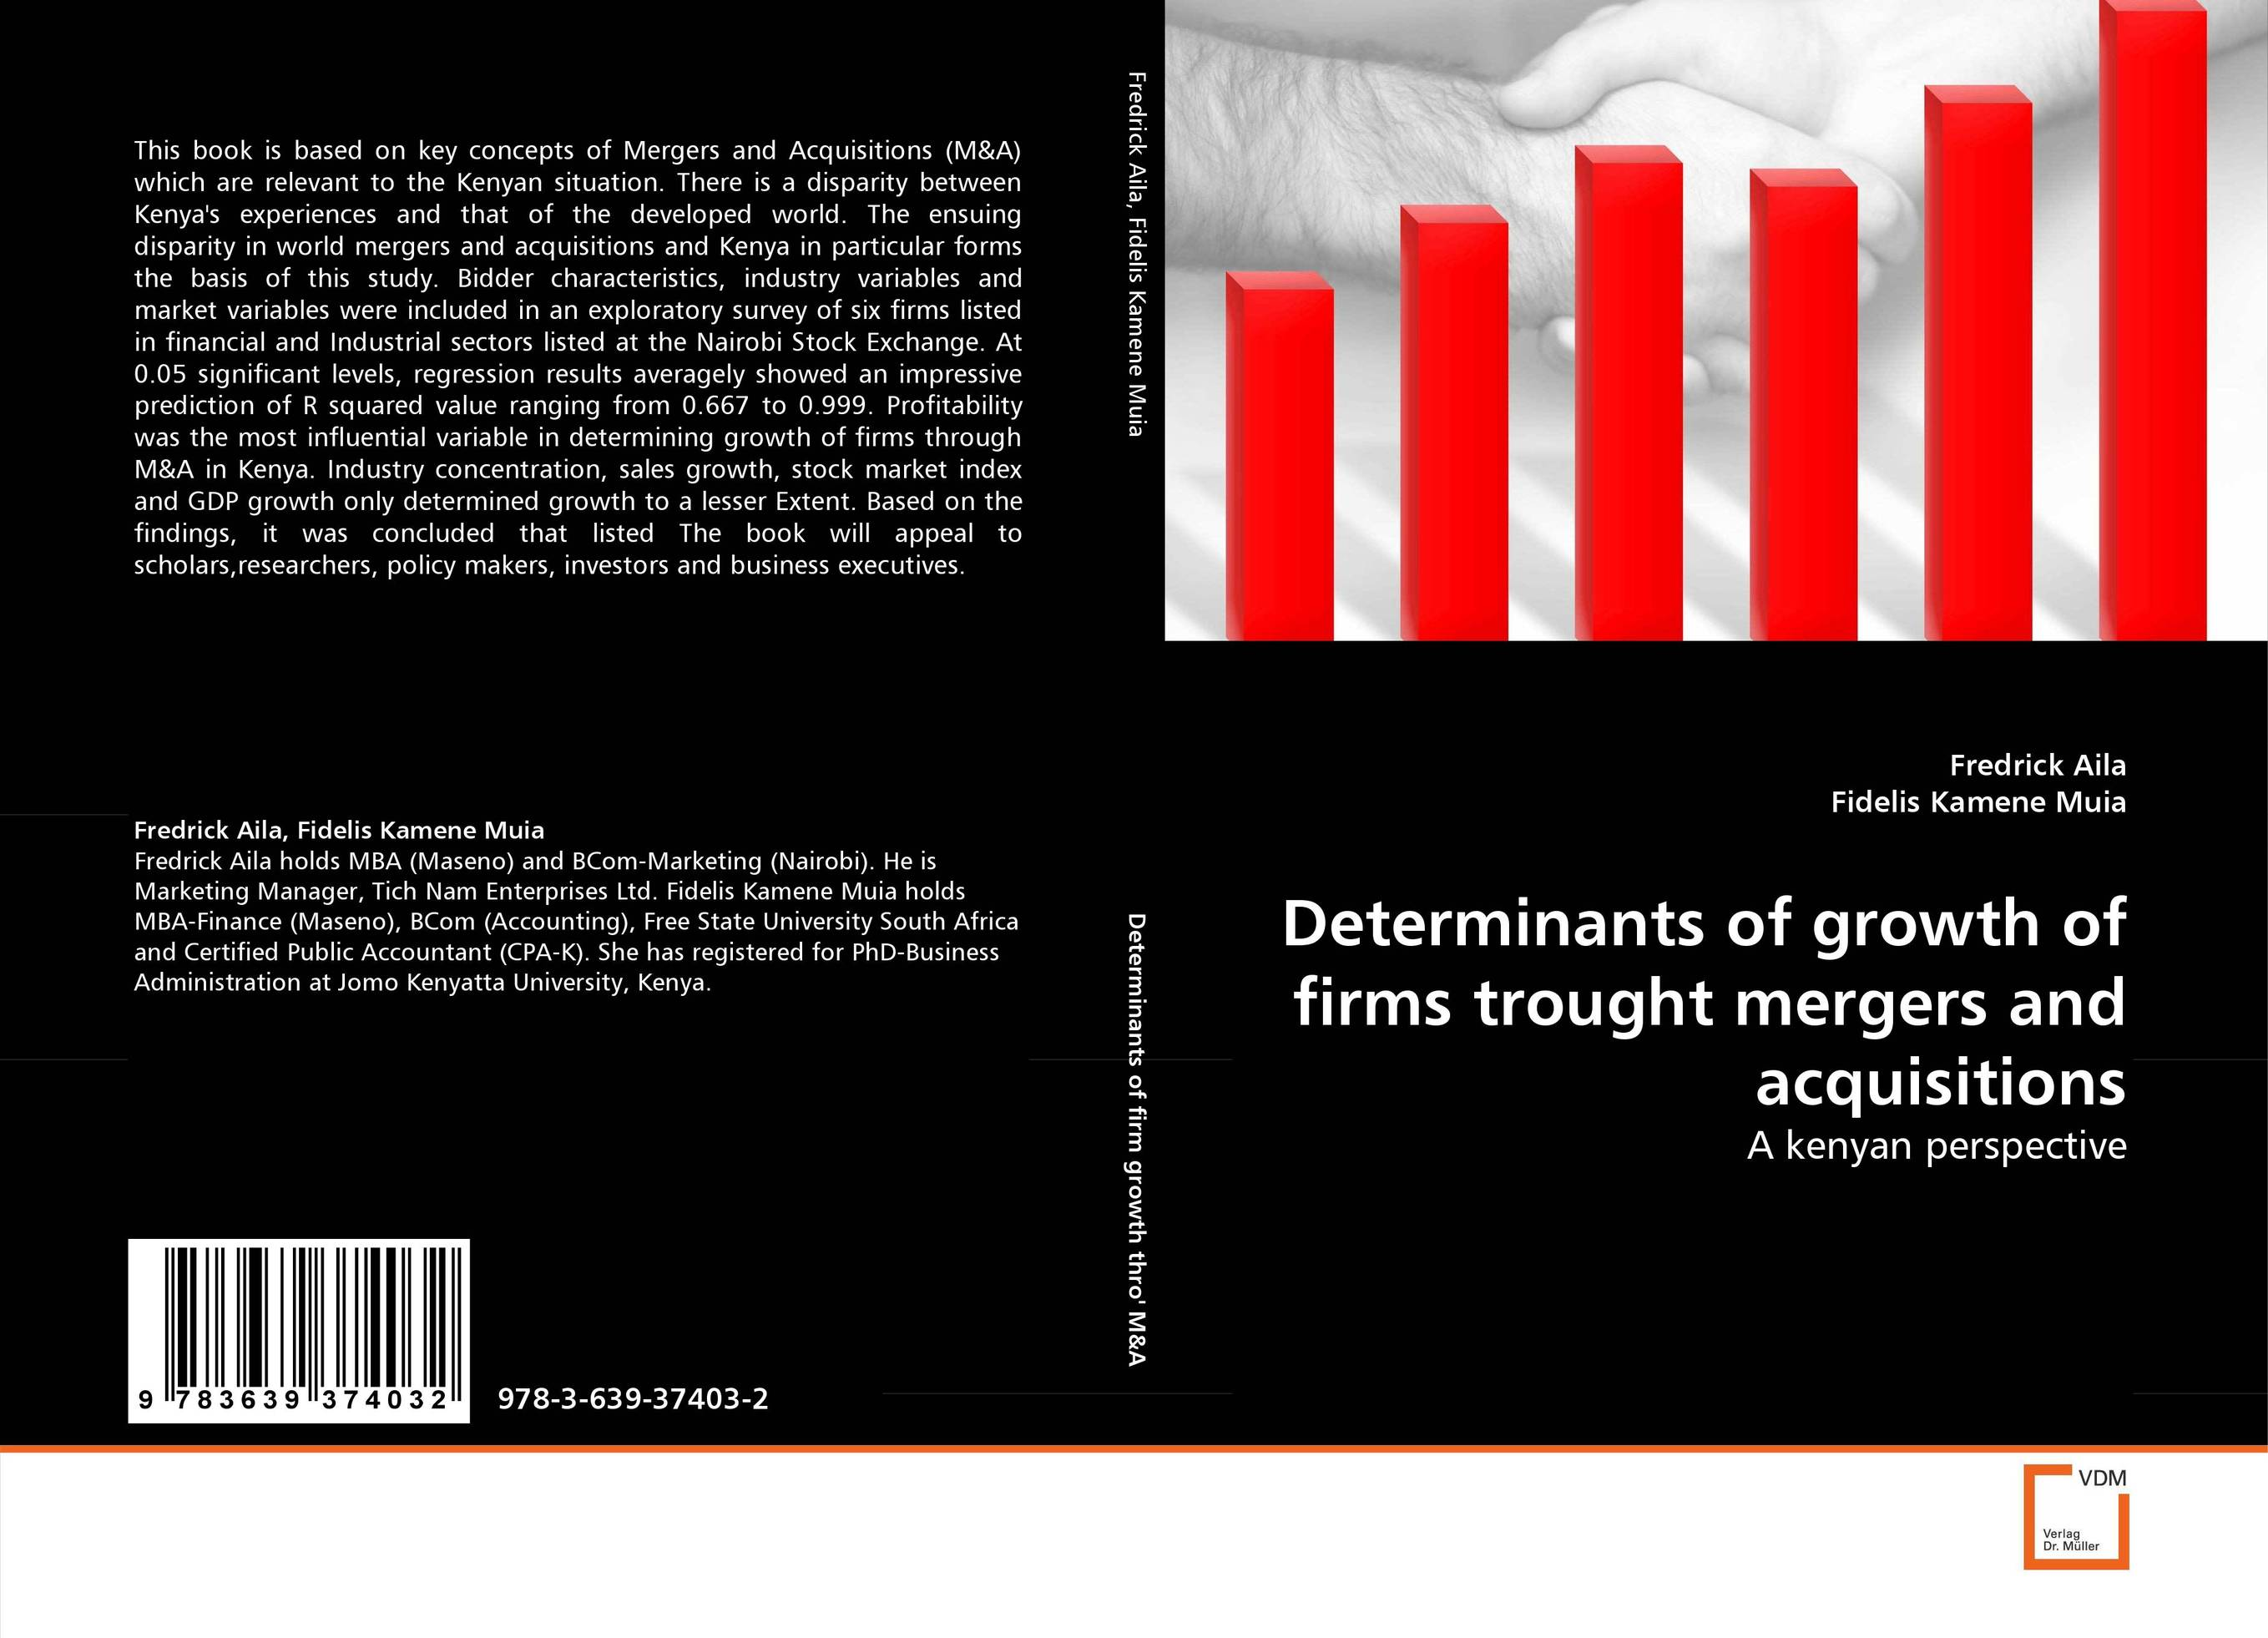 Determinants of growth of firms trought mergers and acquisitions gender and the growth of the export horticulture industry in kenya